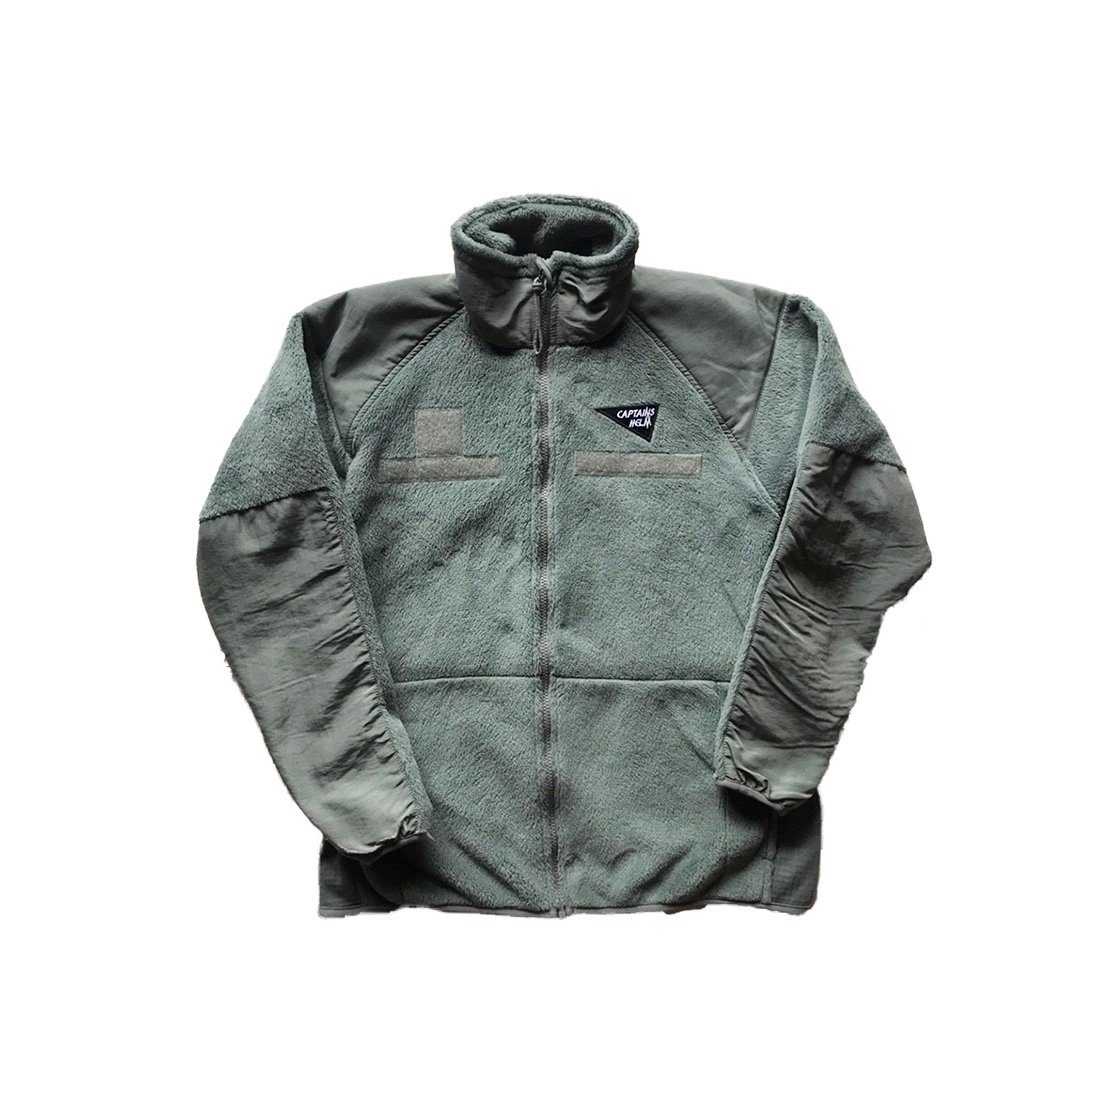 U.S MILITARY × CAPTAINS HELM    #L3 FLEECE MILITARY JACKET